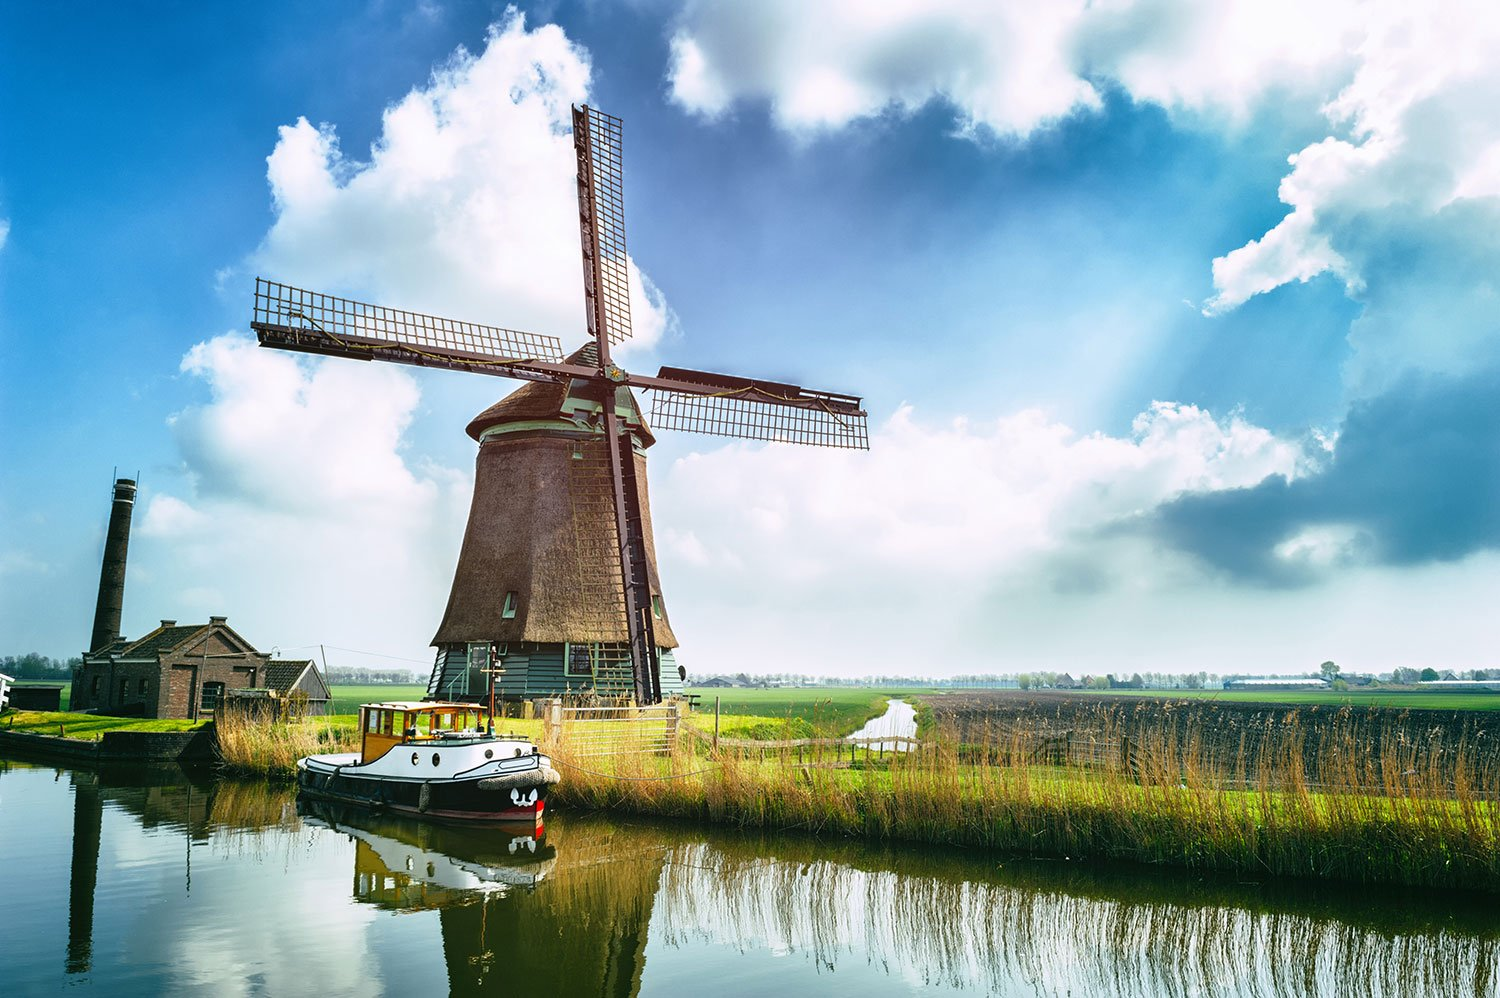 A wooden windmill next a small body of glassy water on a sunny day in the Netherlands